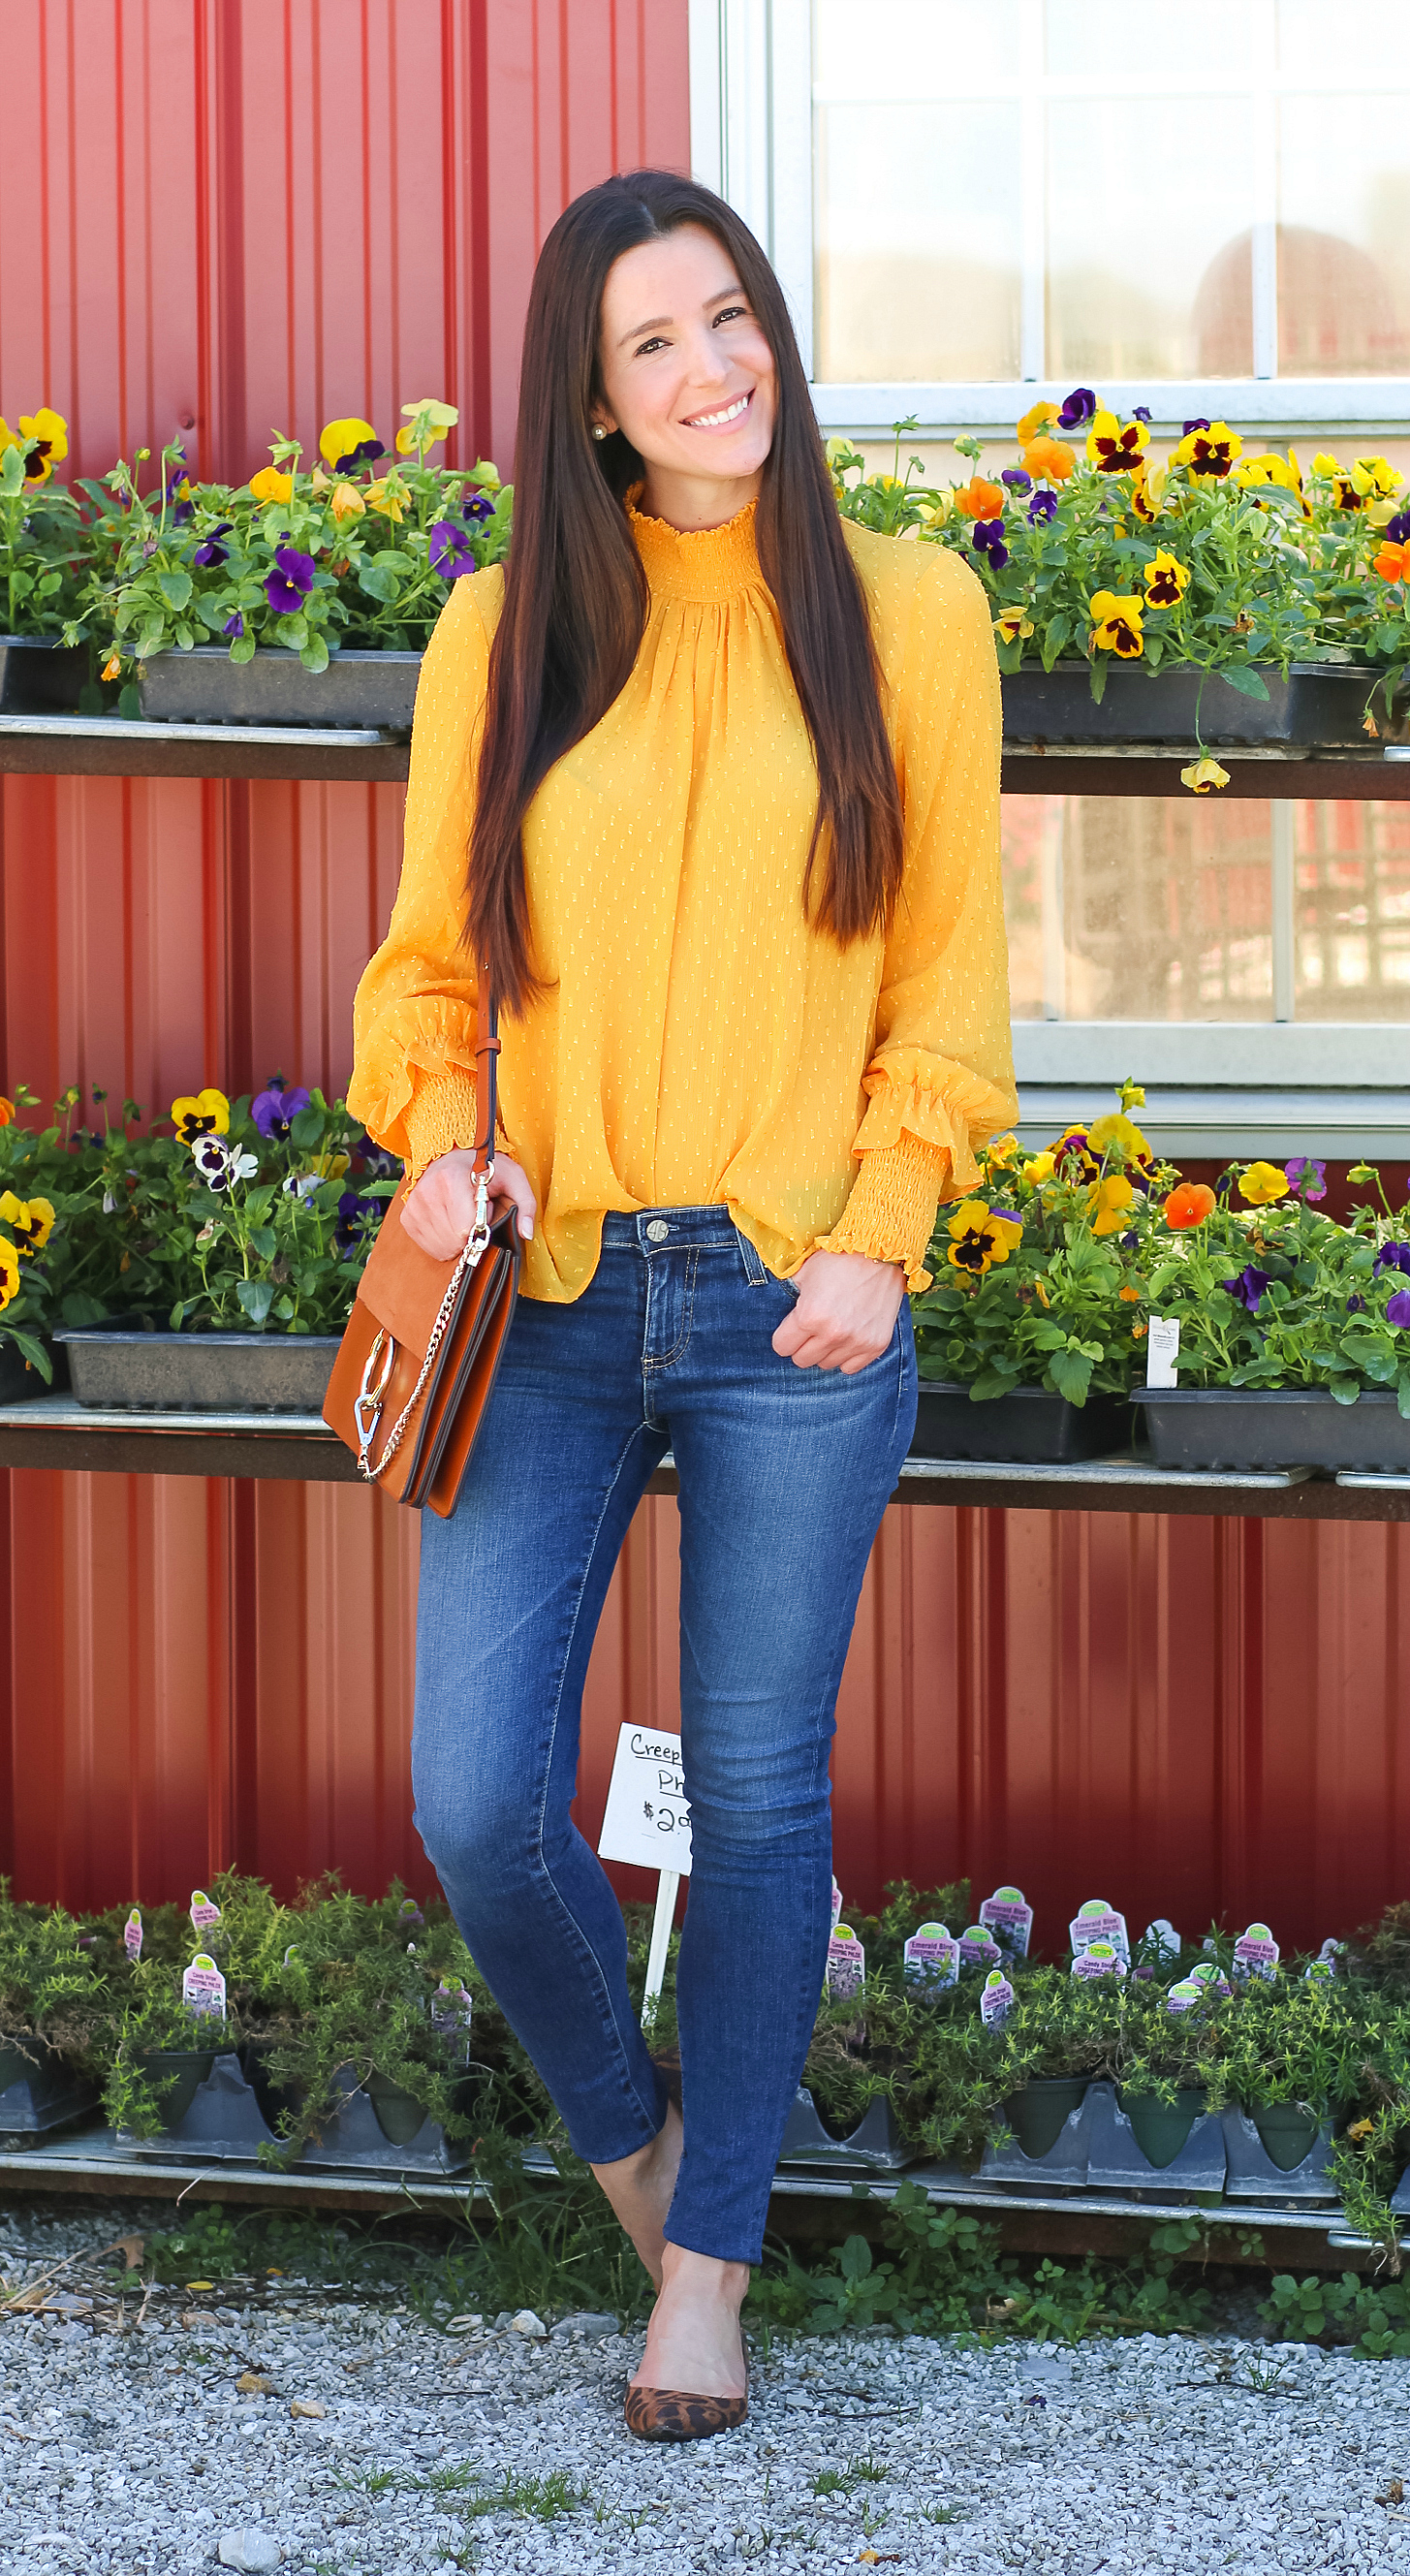 English Factory marigold swiss dot blouse with victorian collar, AG The Legging raw hem ankle skinny jeans, leopard flats, and brown Chloe Faye dupe bag | How to wear a victorian collar casually for fall by fashion blogger Stephanie Ziajka from Diary of a Debutante